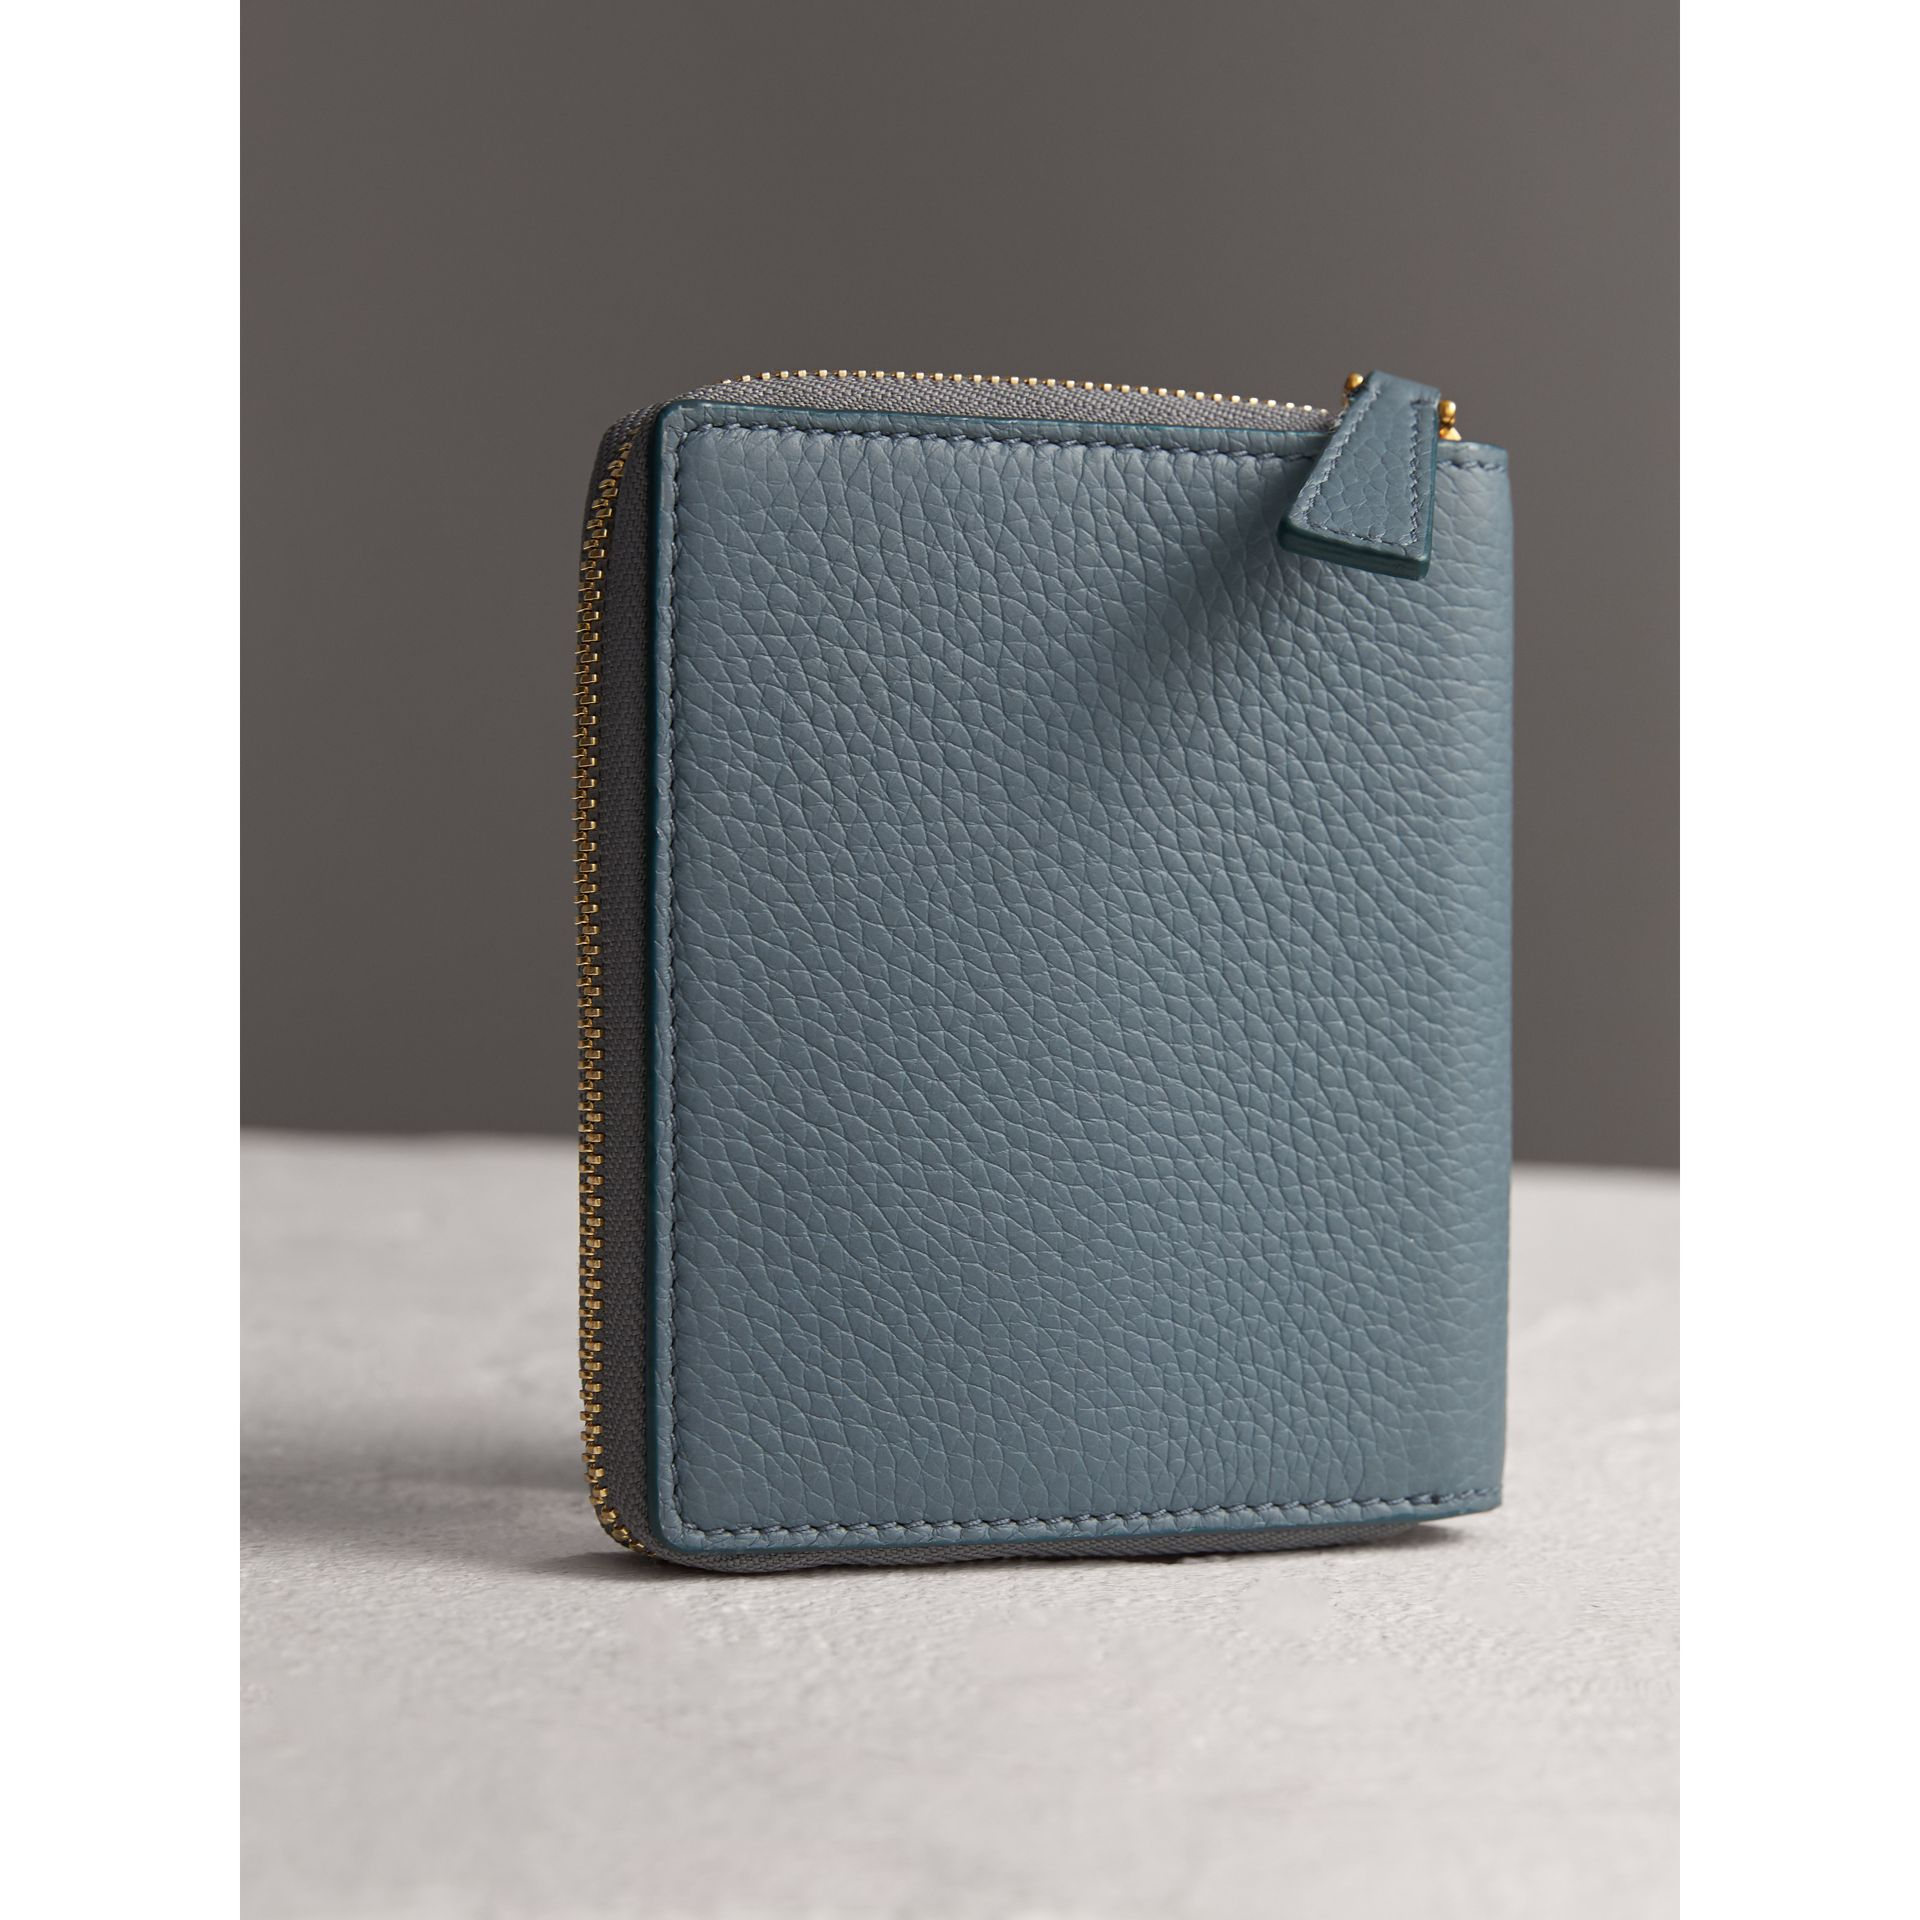 Embossed Grainy Leather Ziparound A6 Notebook Case in Dusty Teal Blue | Burberry Hong Kong - gallery image 2